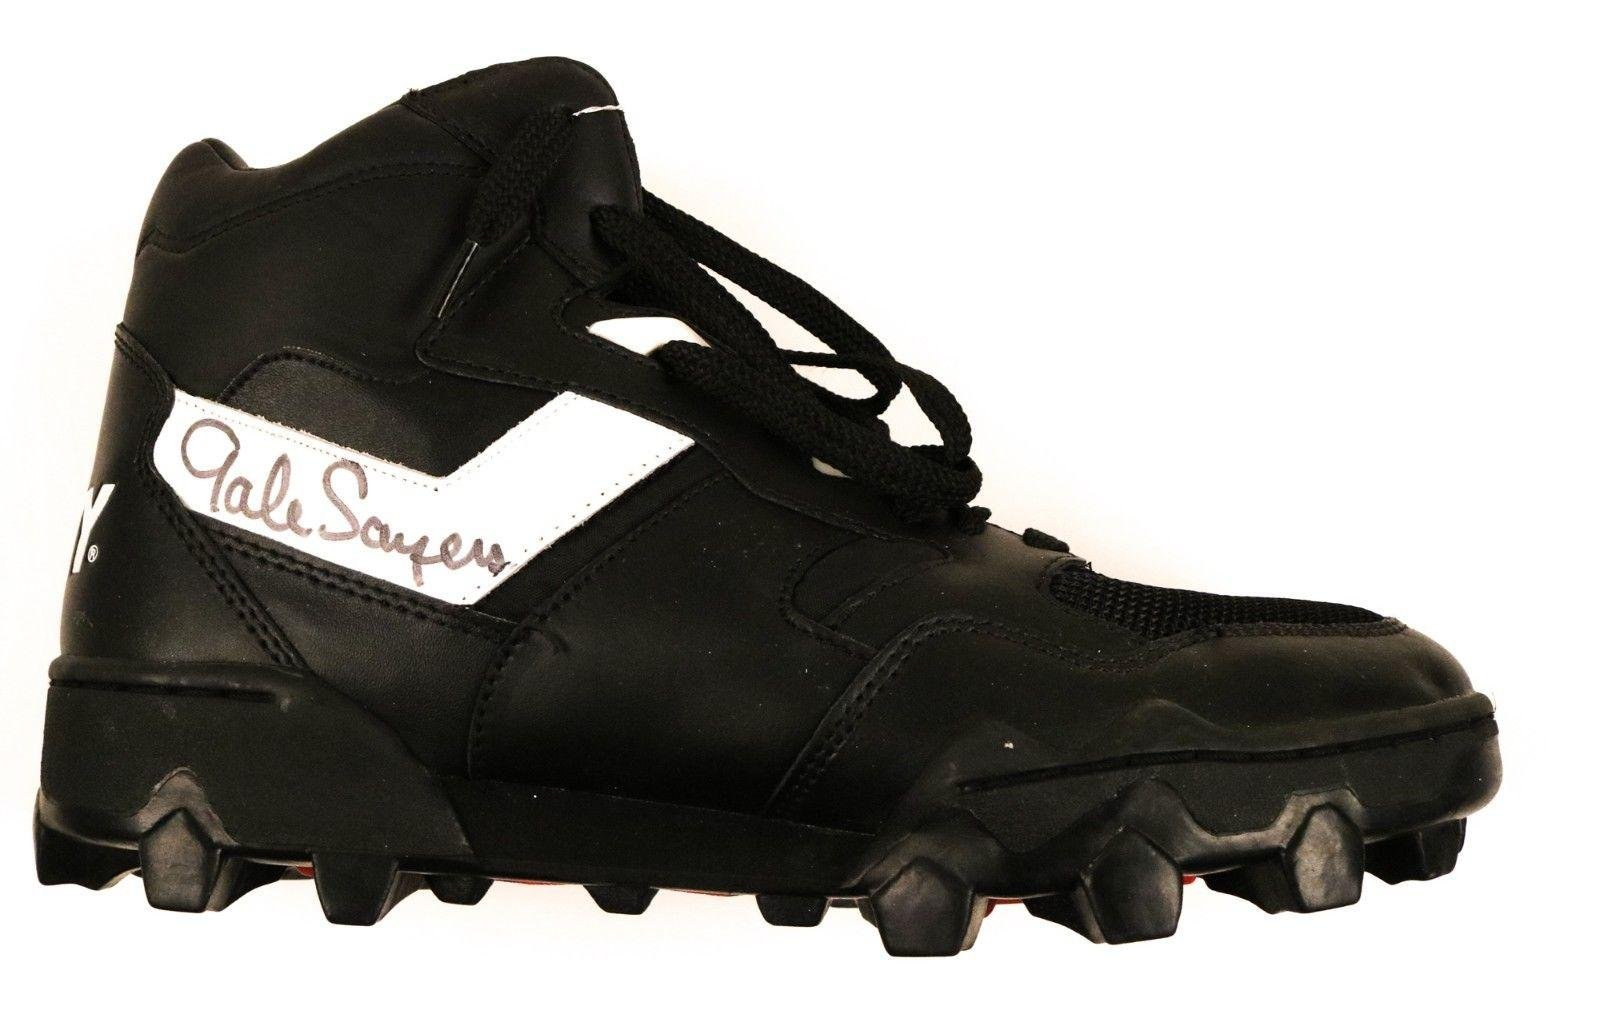 Gale Sayers Bears HOF Signed Pony Fury Shoe/Cleat COA JSA Certified Autographed NFL Cleats